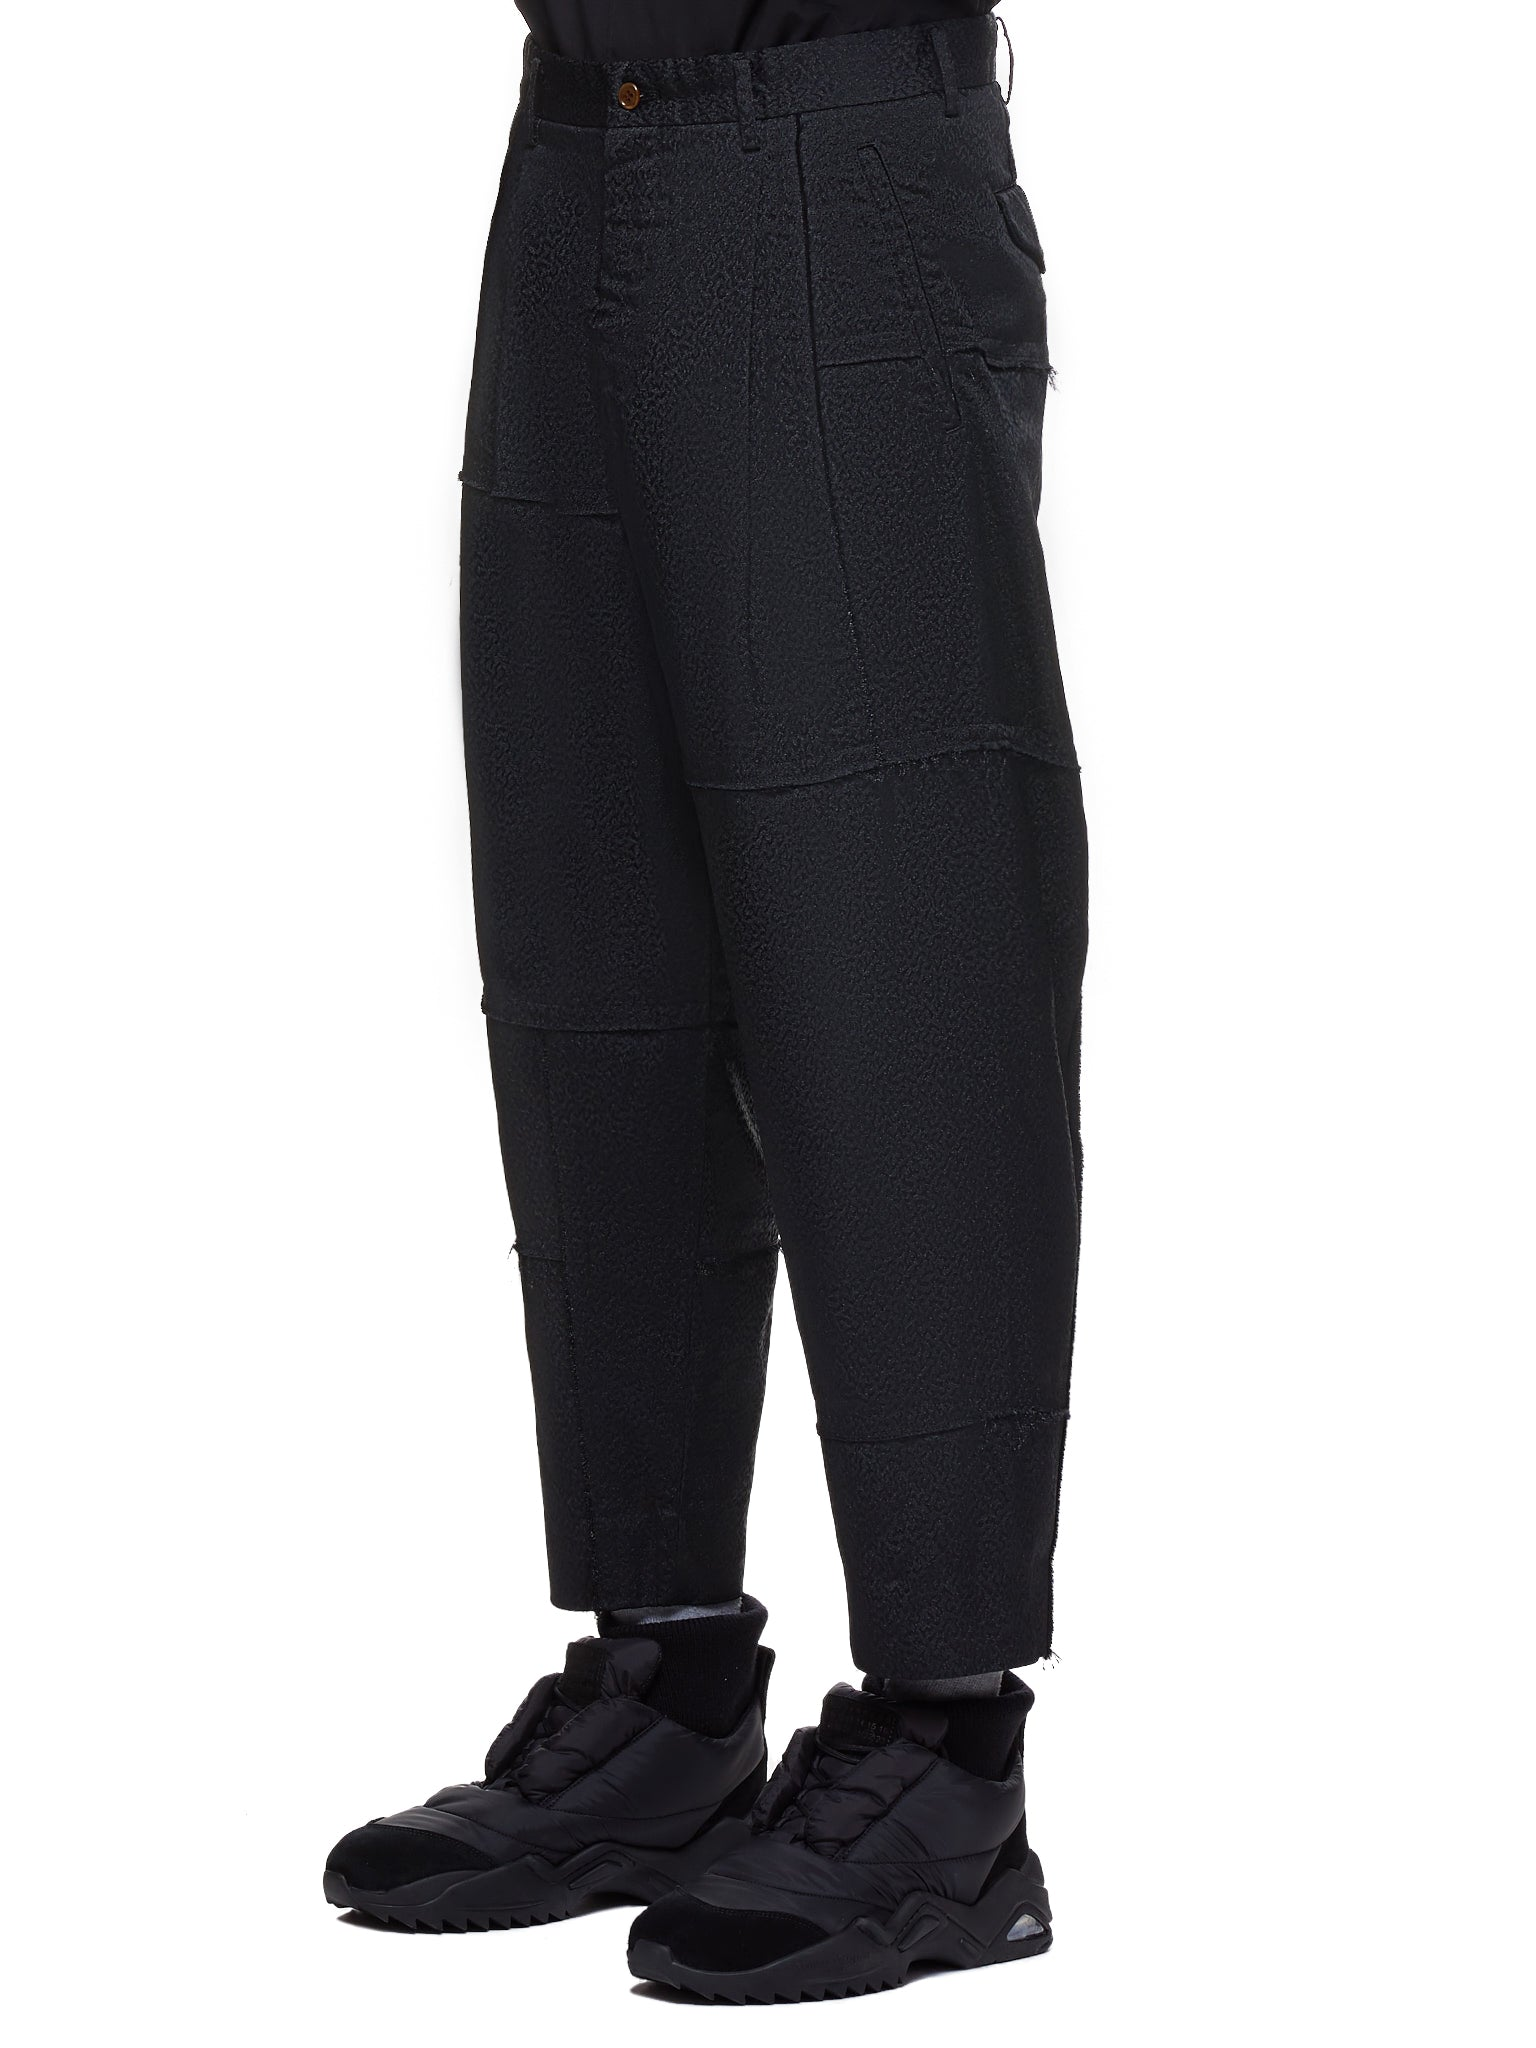 Cropped Trousers (PD-P037-051-BLACK)